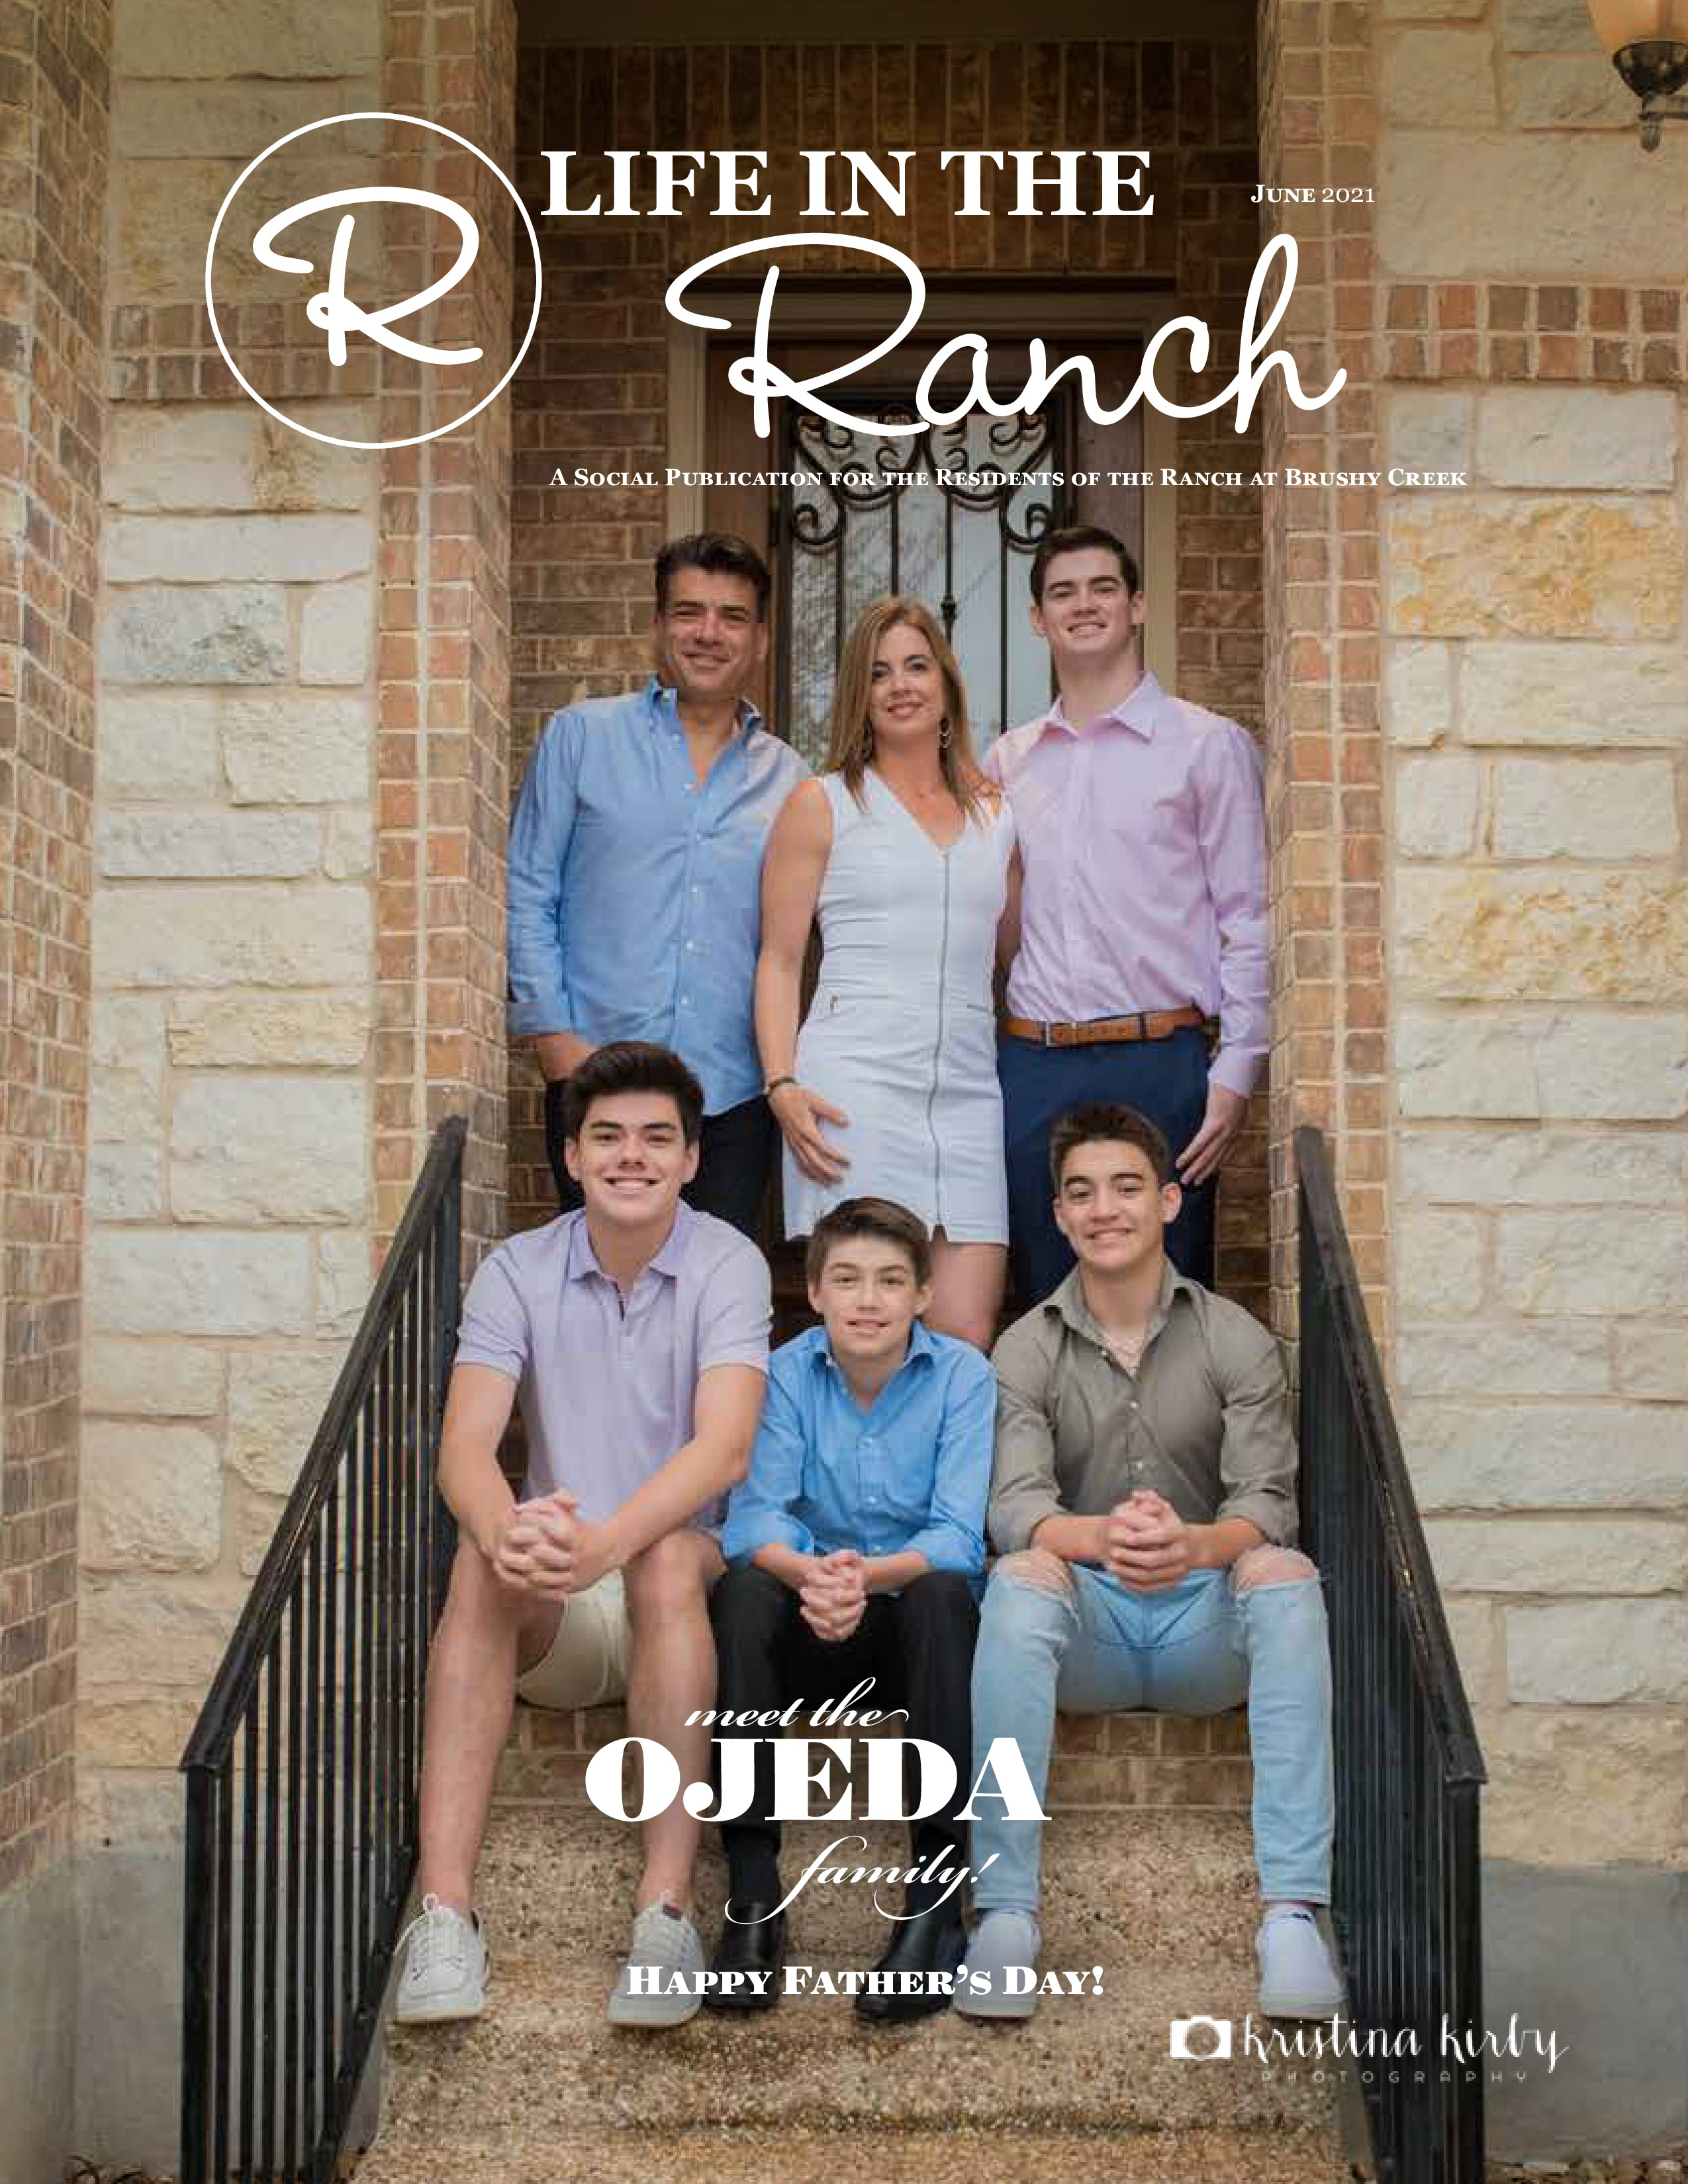 Life in the Ranch 2021-06-01